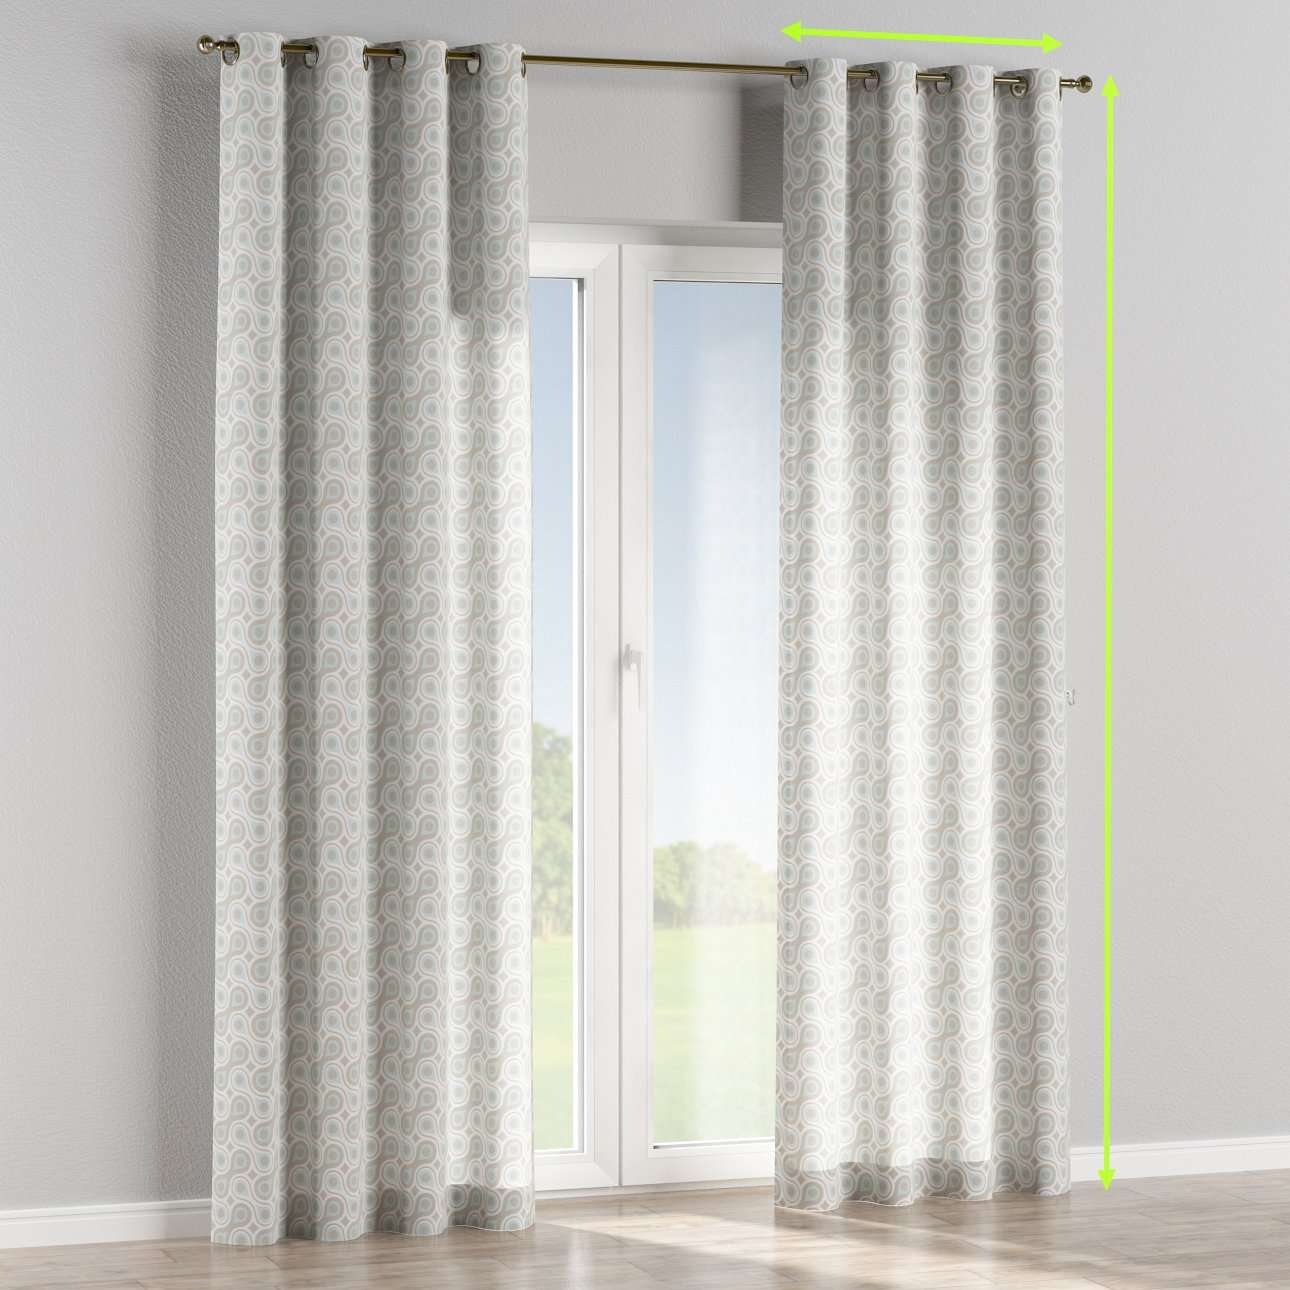 Eyelet curtains in collection Flowers, fabric: 311-13